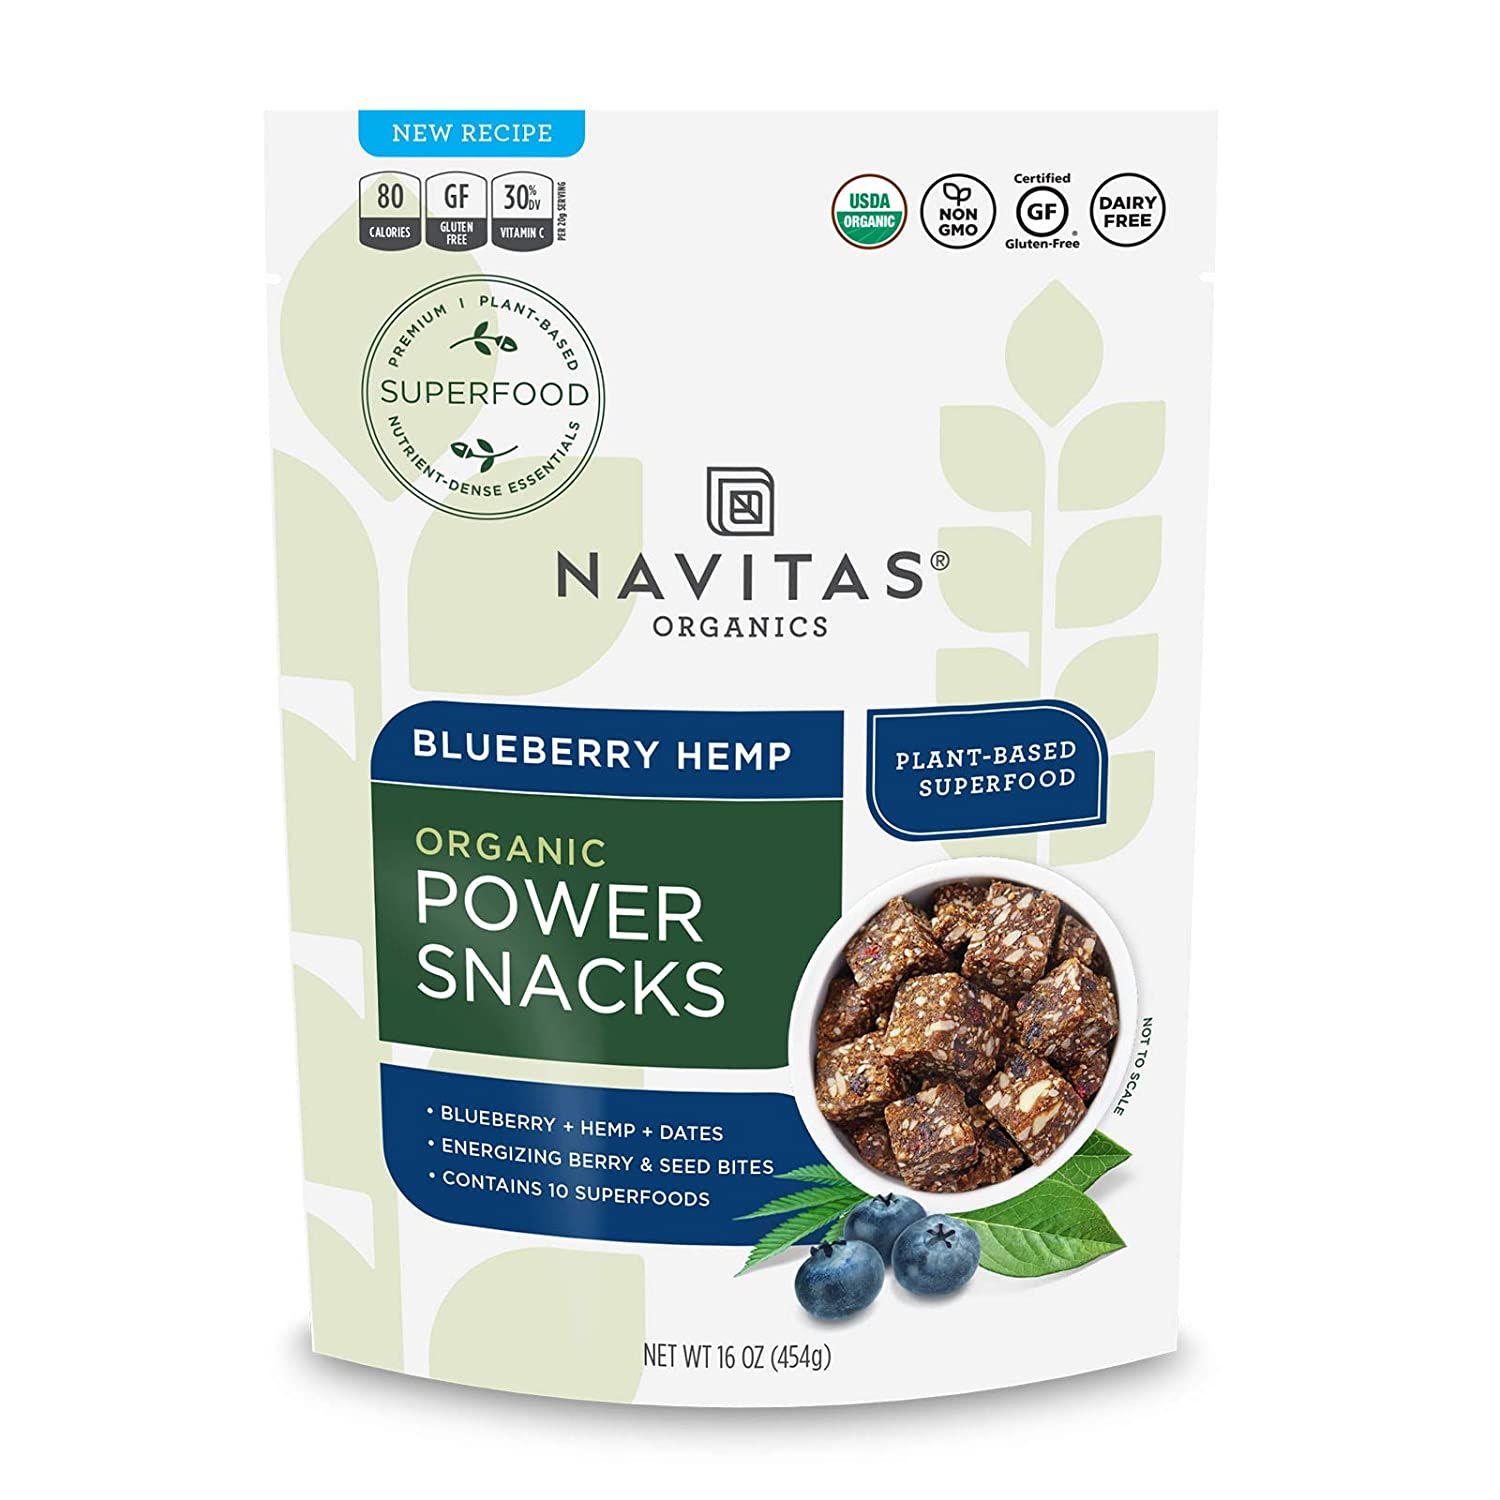 Navitas Organics Superfood Power Snacks, Blueberry Hemp, 16 oz. Bag, 23 Servings — Organic, Non-GMO, Gluten-Free (Pack of 1)